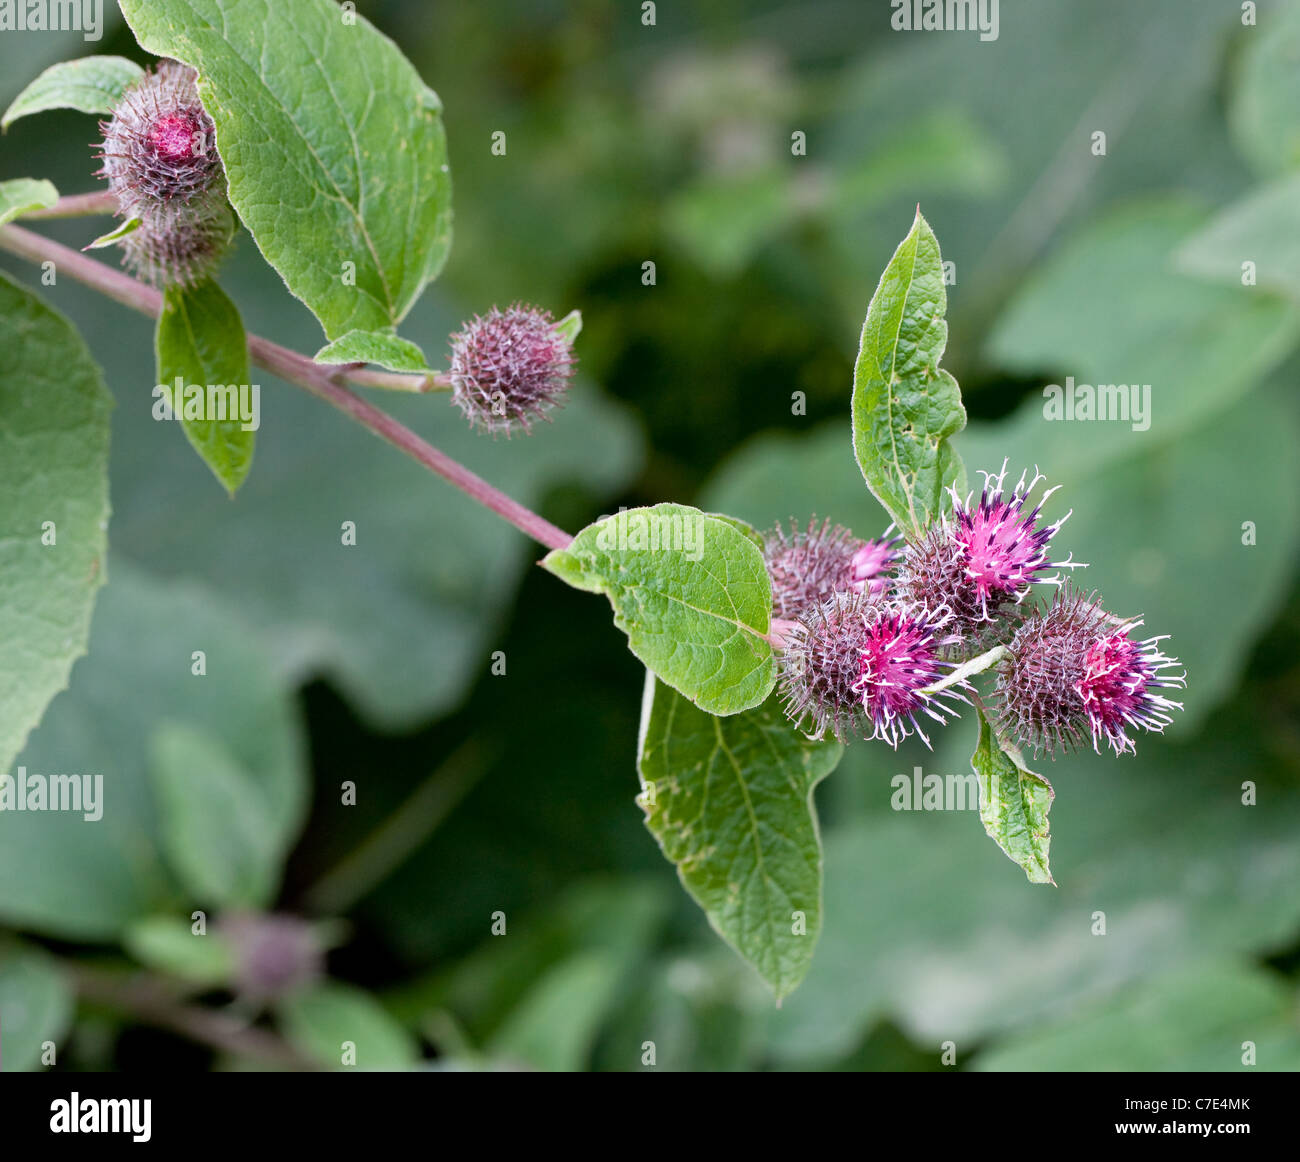 Lesser Burdock Arctium minor showing burs sometimes called sticky buds bobs Jacks or Willy , cleavers or beggars - Stock Image